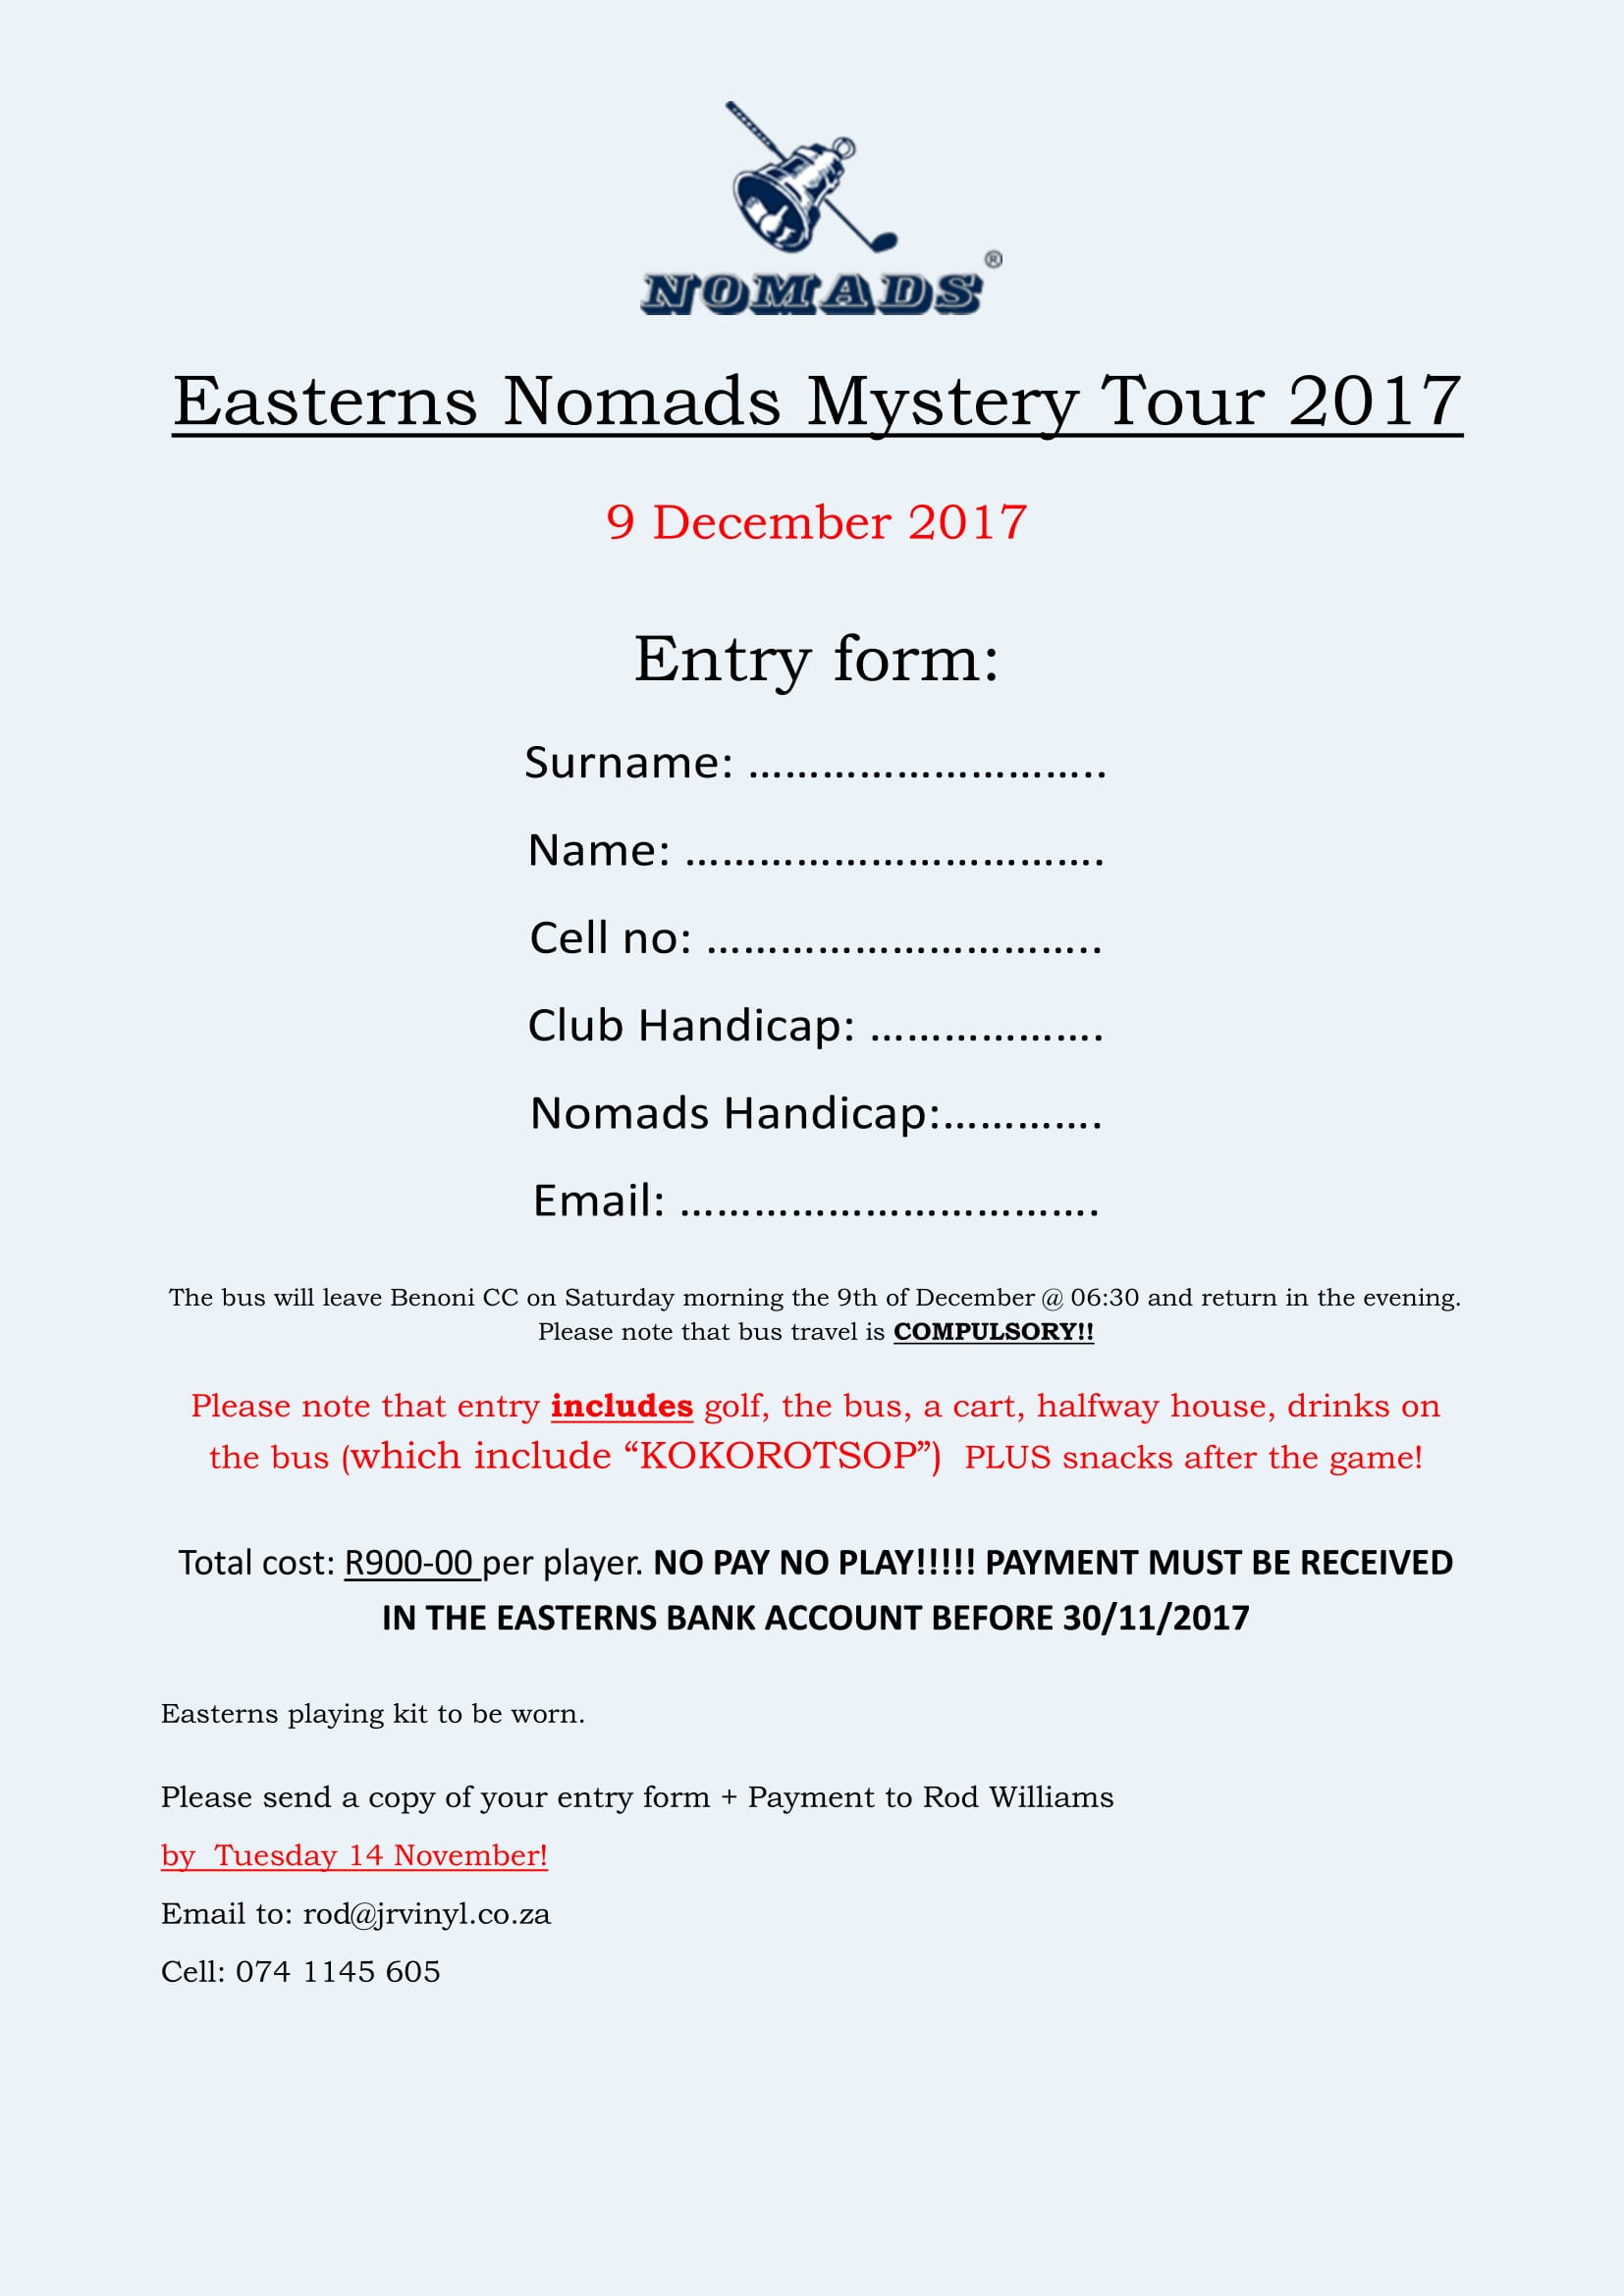 Mystery Tour 2017 Entry Form 1